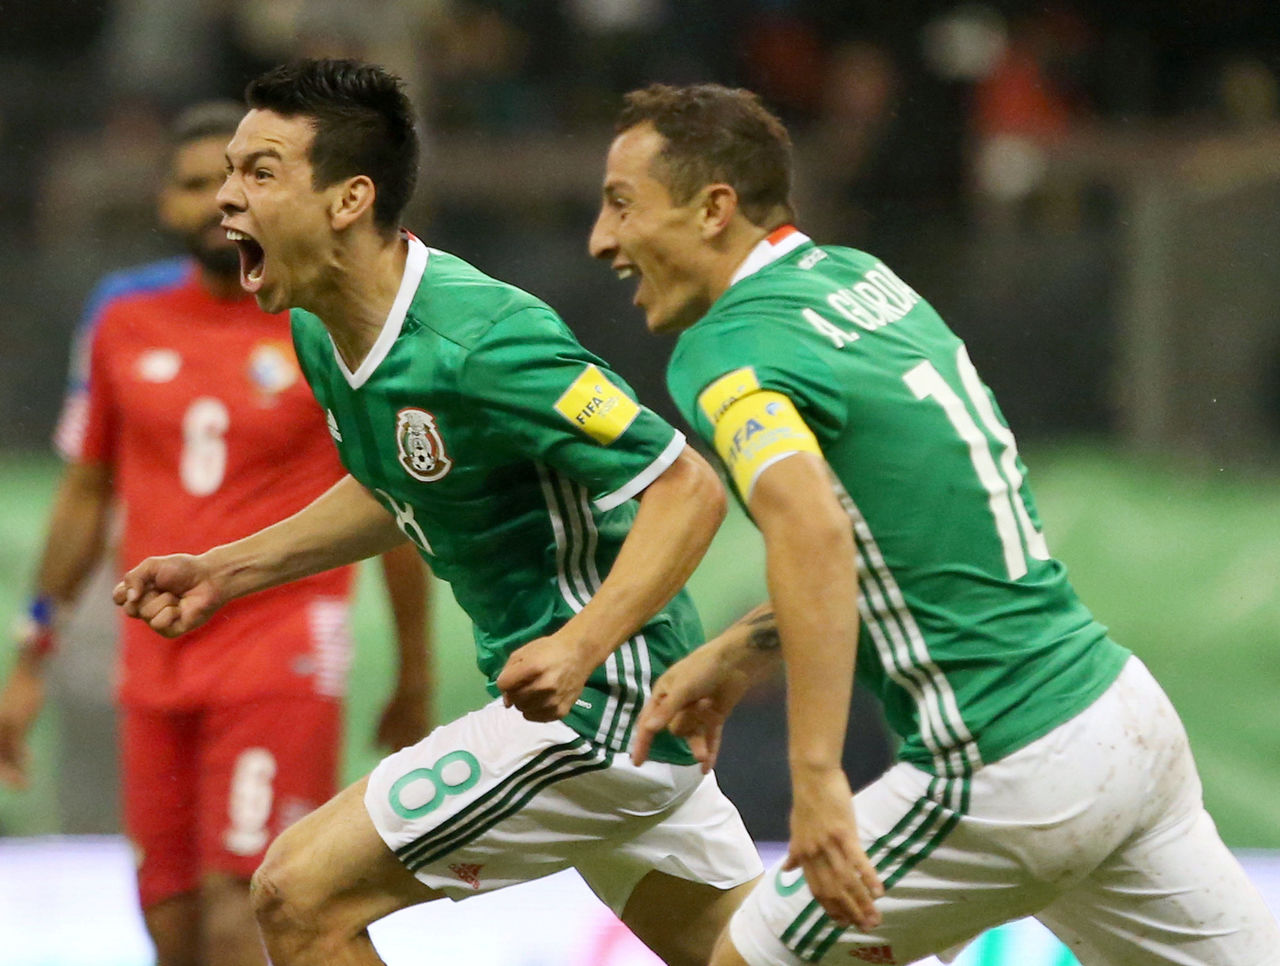 Cropped 2017 09 02t042349z 1824369082 rc1c3d2b3c30 rtrmadp 3 soccer worldcup mex pan